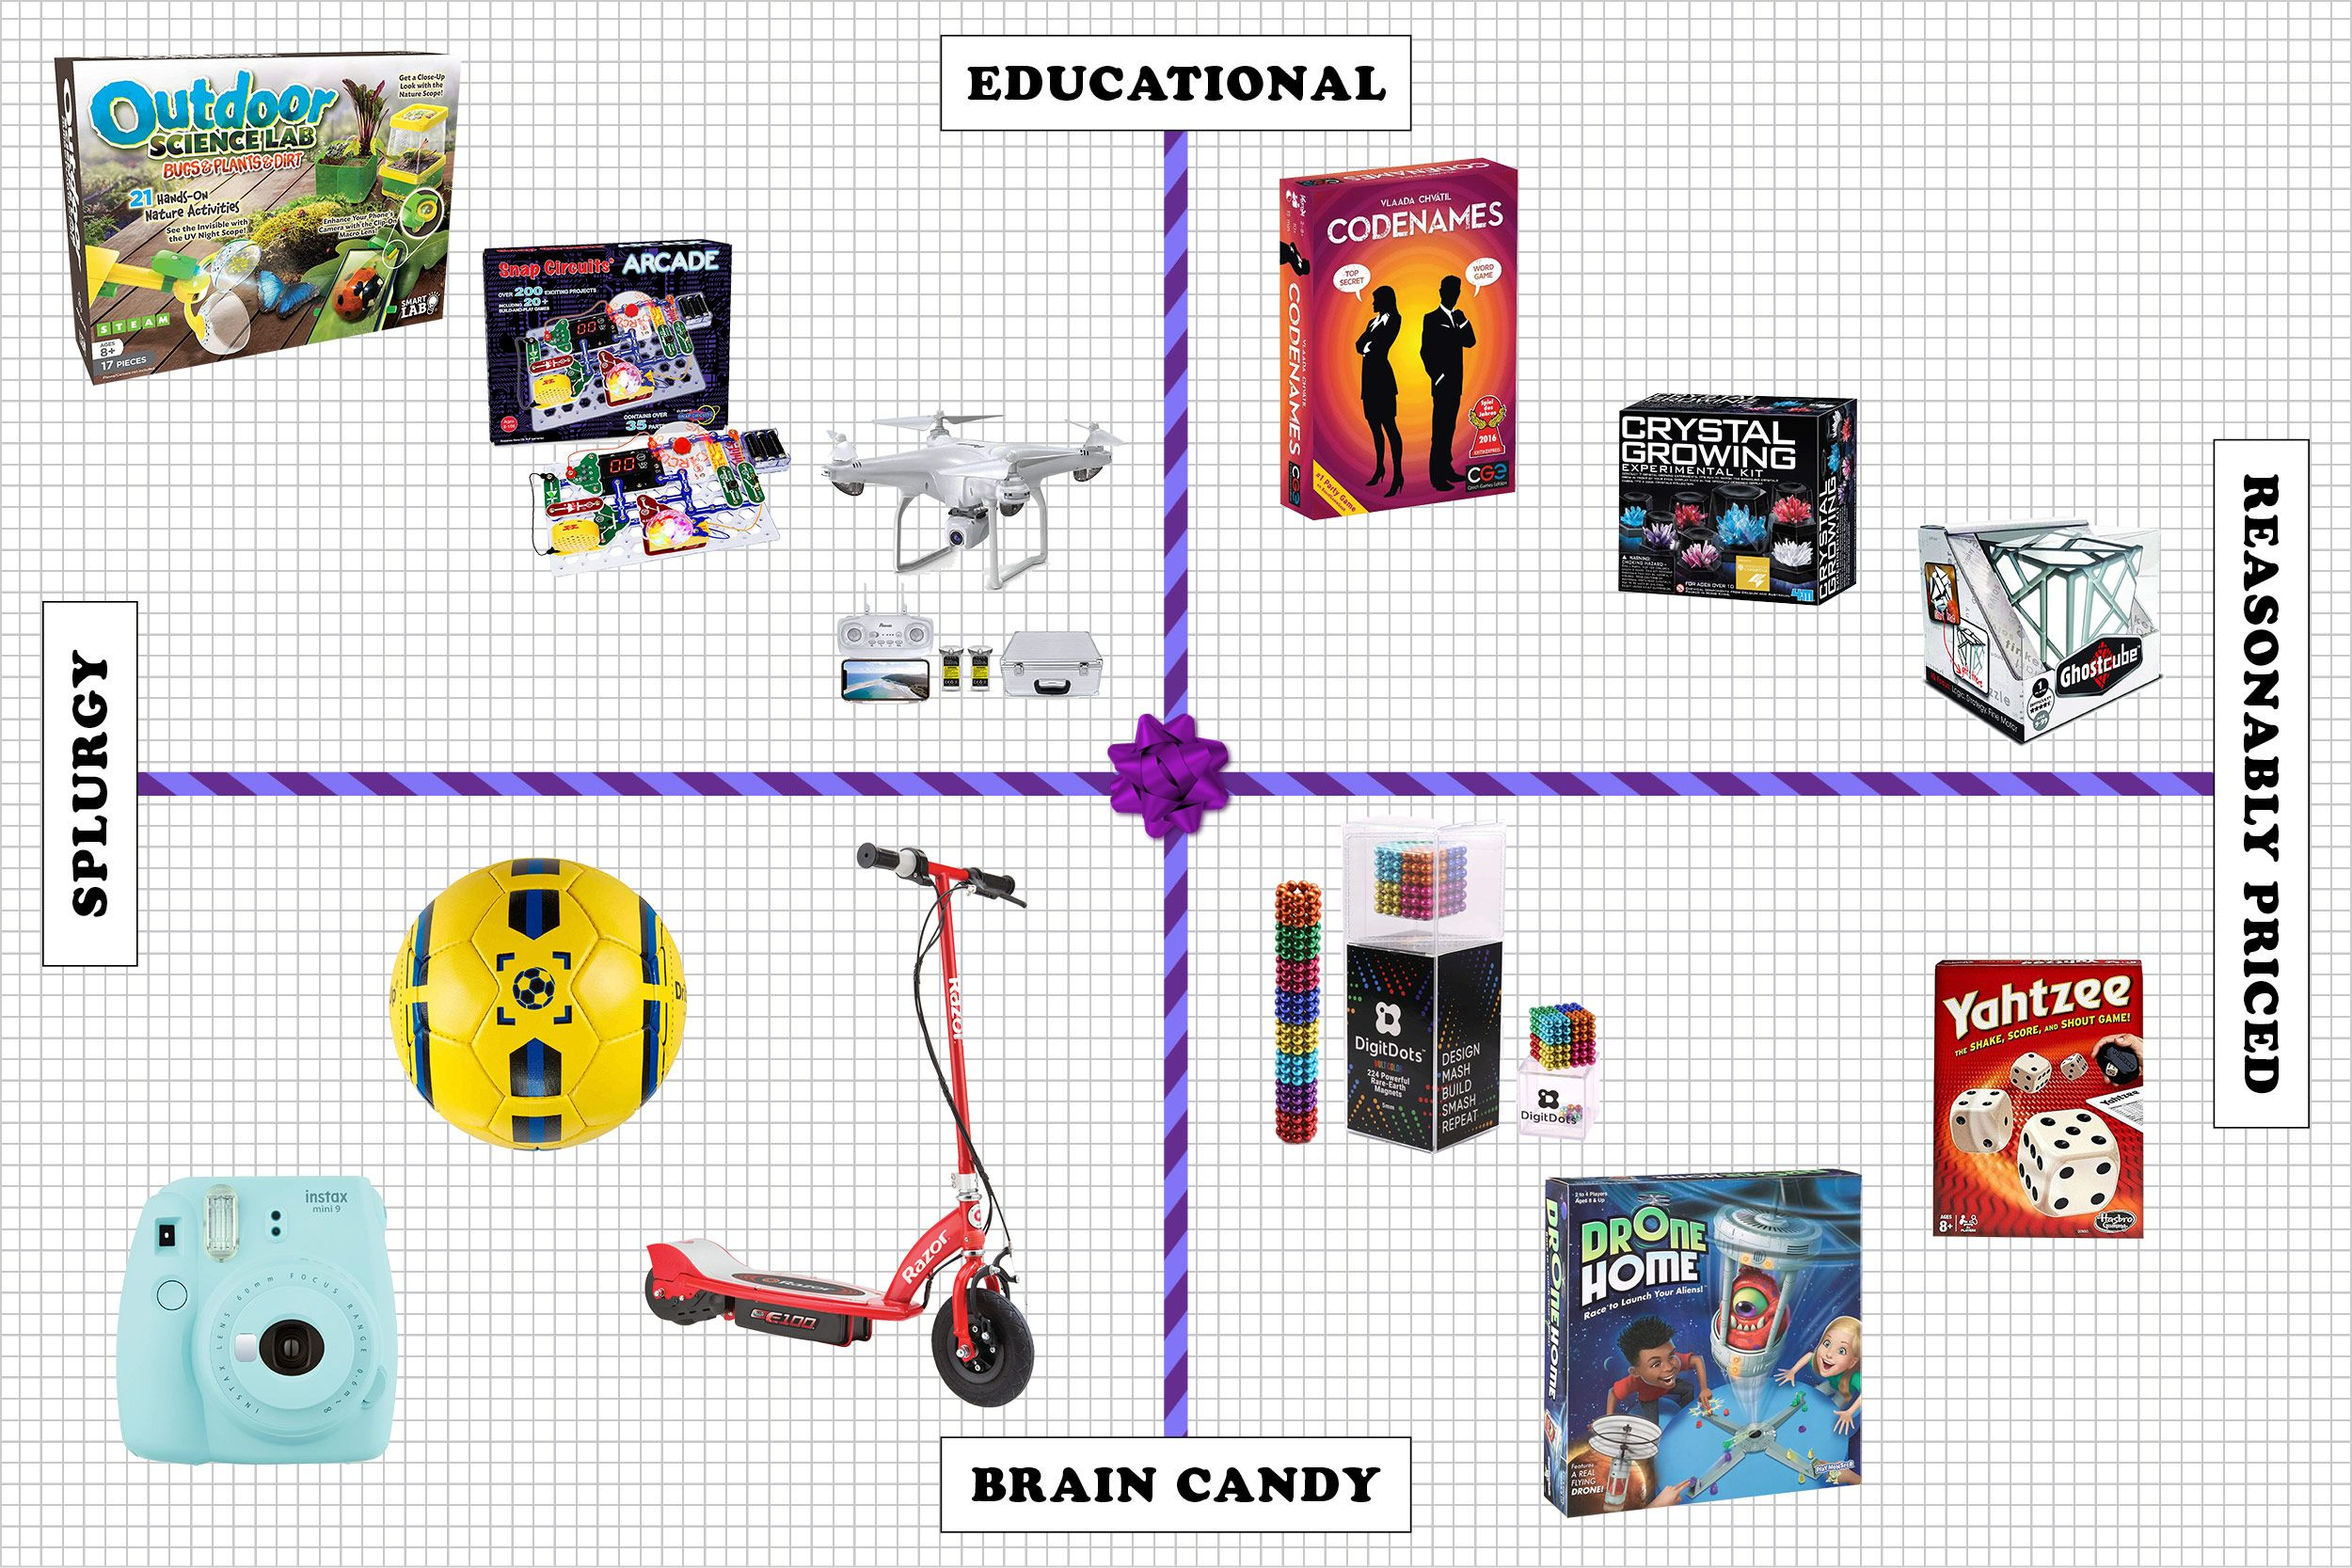 28 Best Gifts For 10 Year Olds 2021 The Strategist New York Magazine